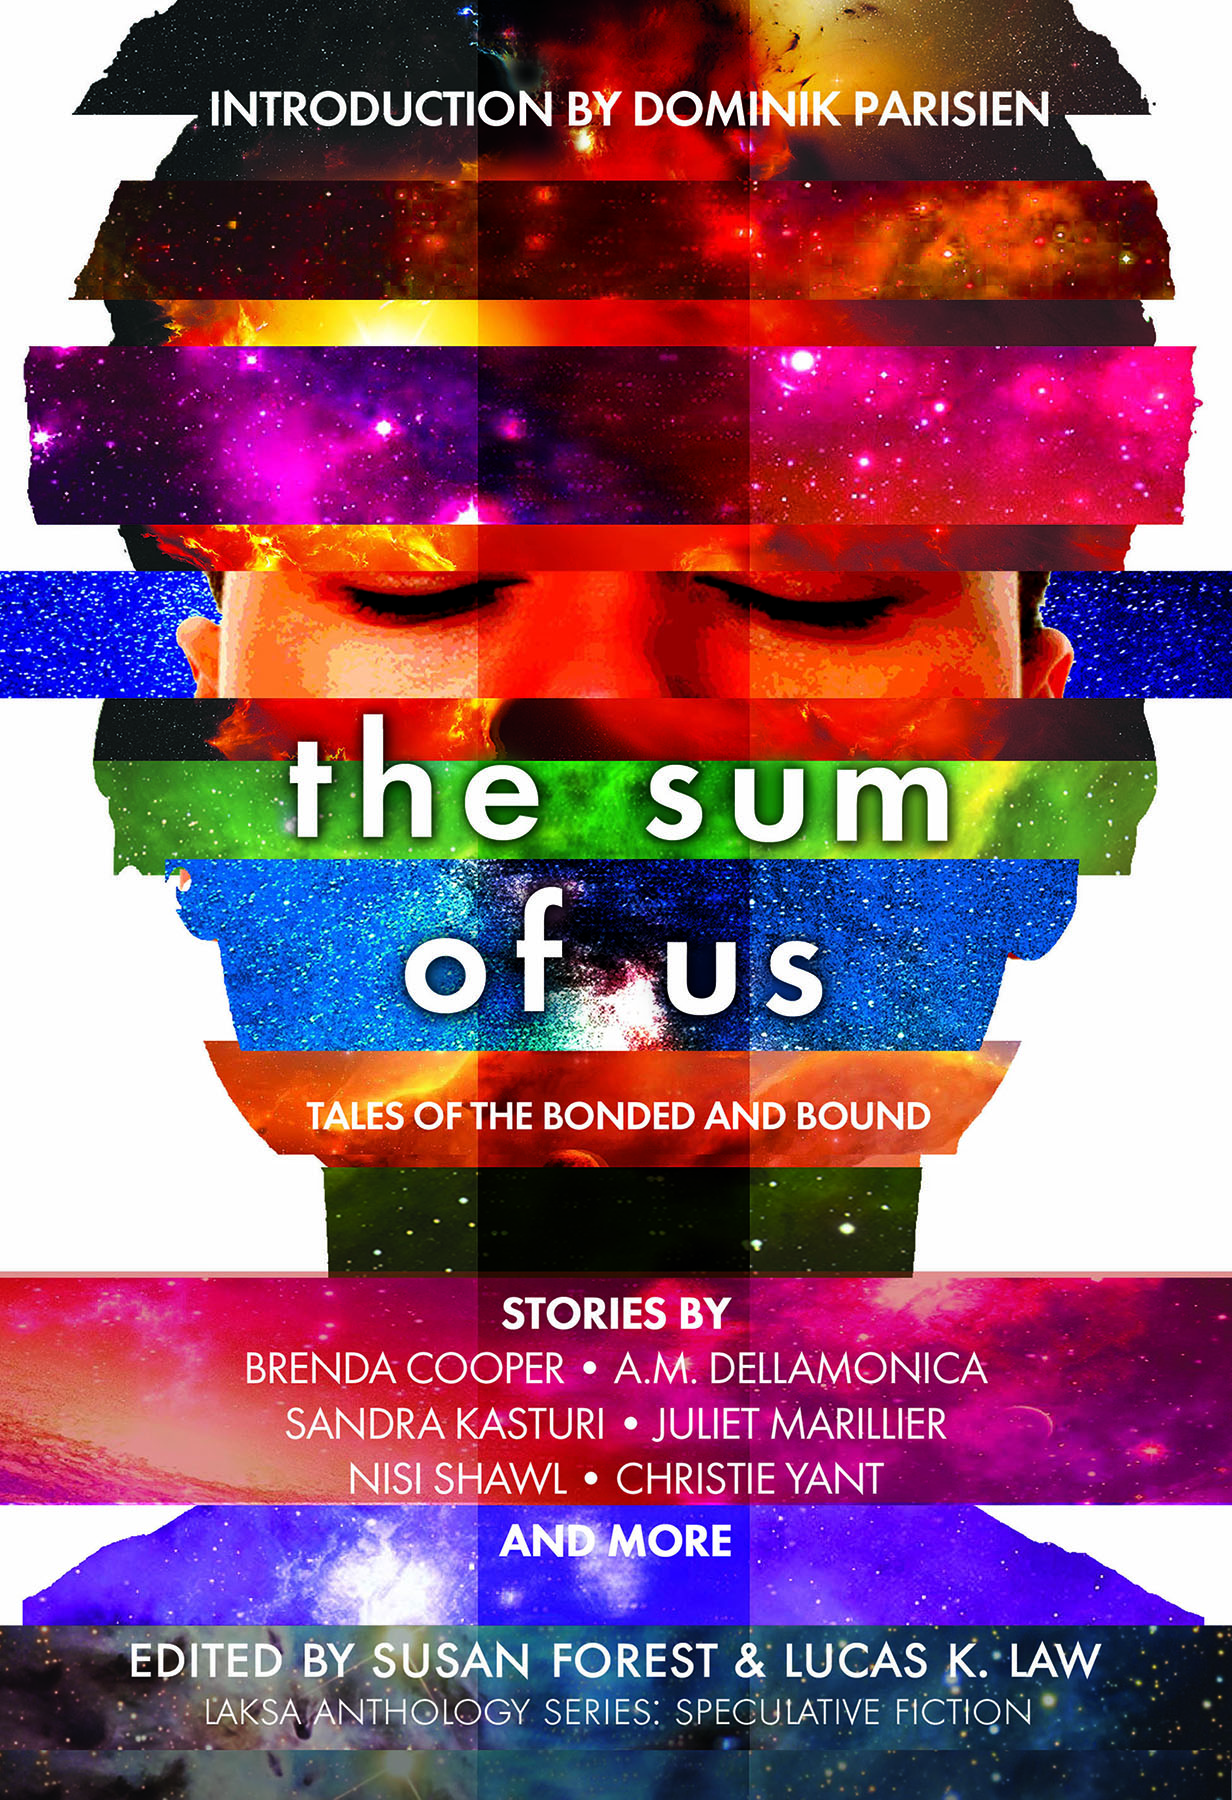 Susan Forest & Lucas K. Law - The Sum of Us